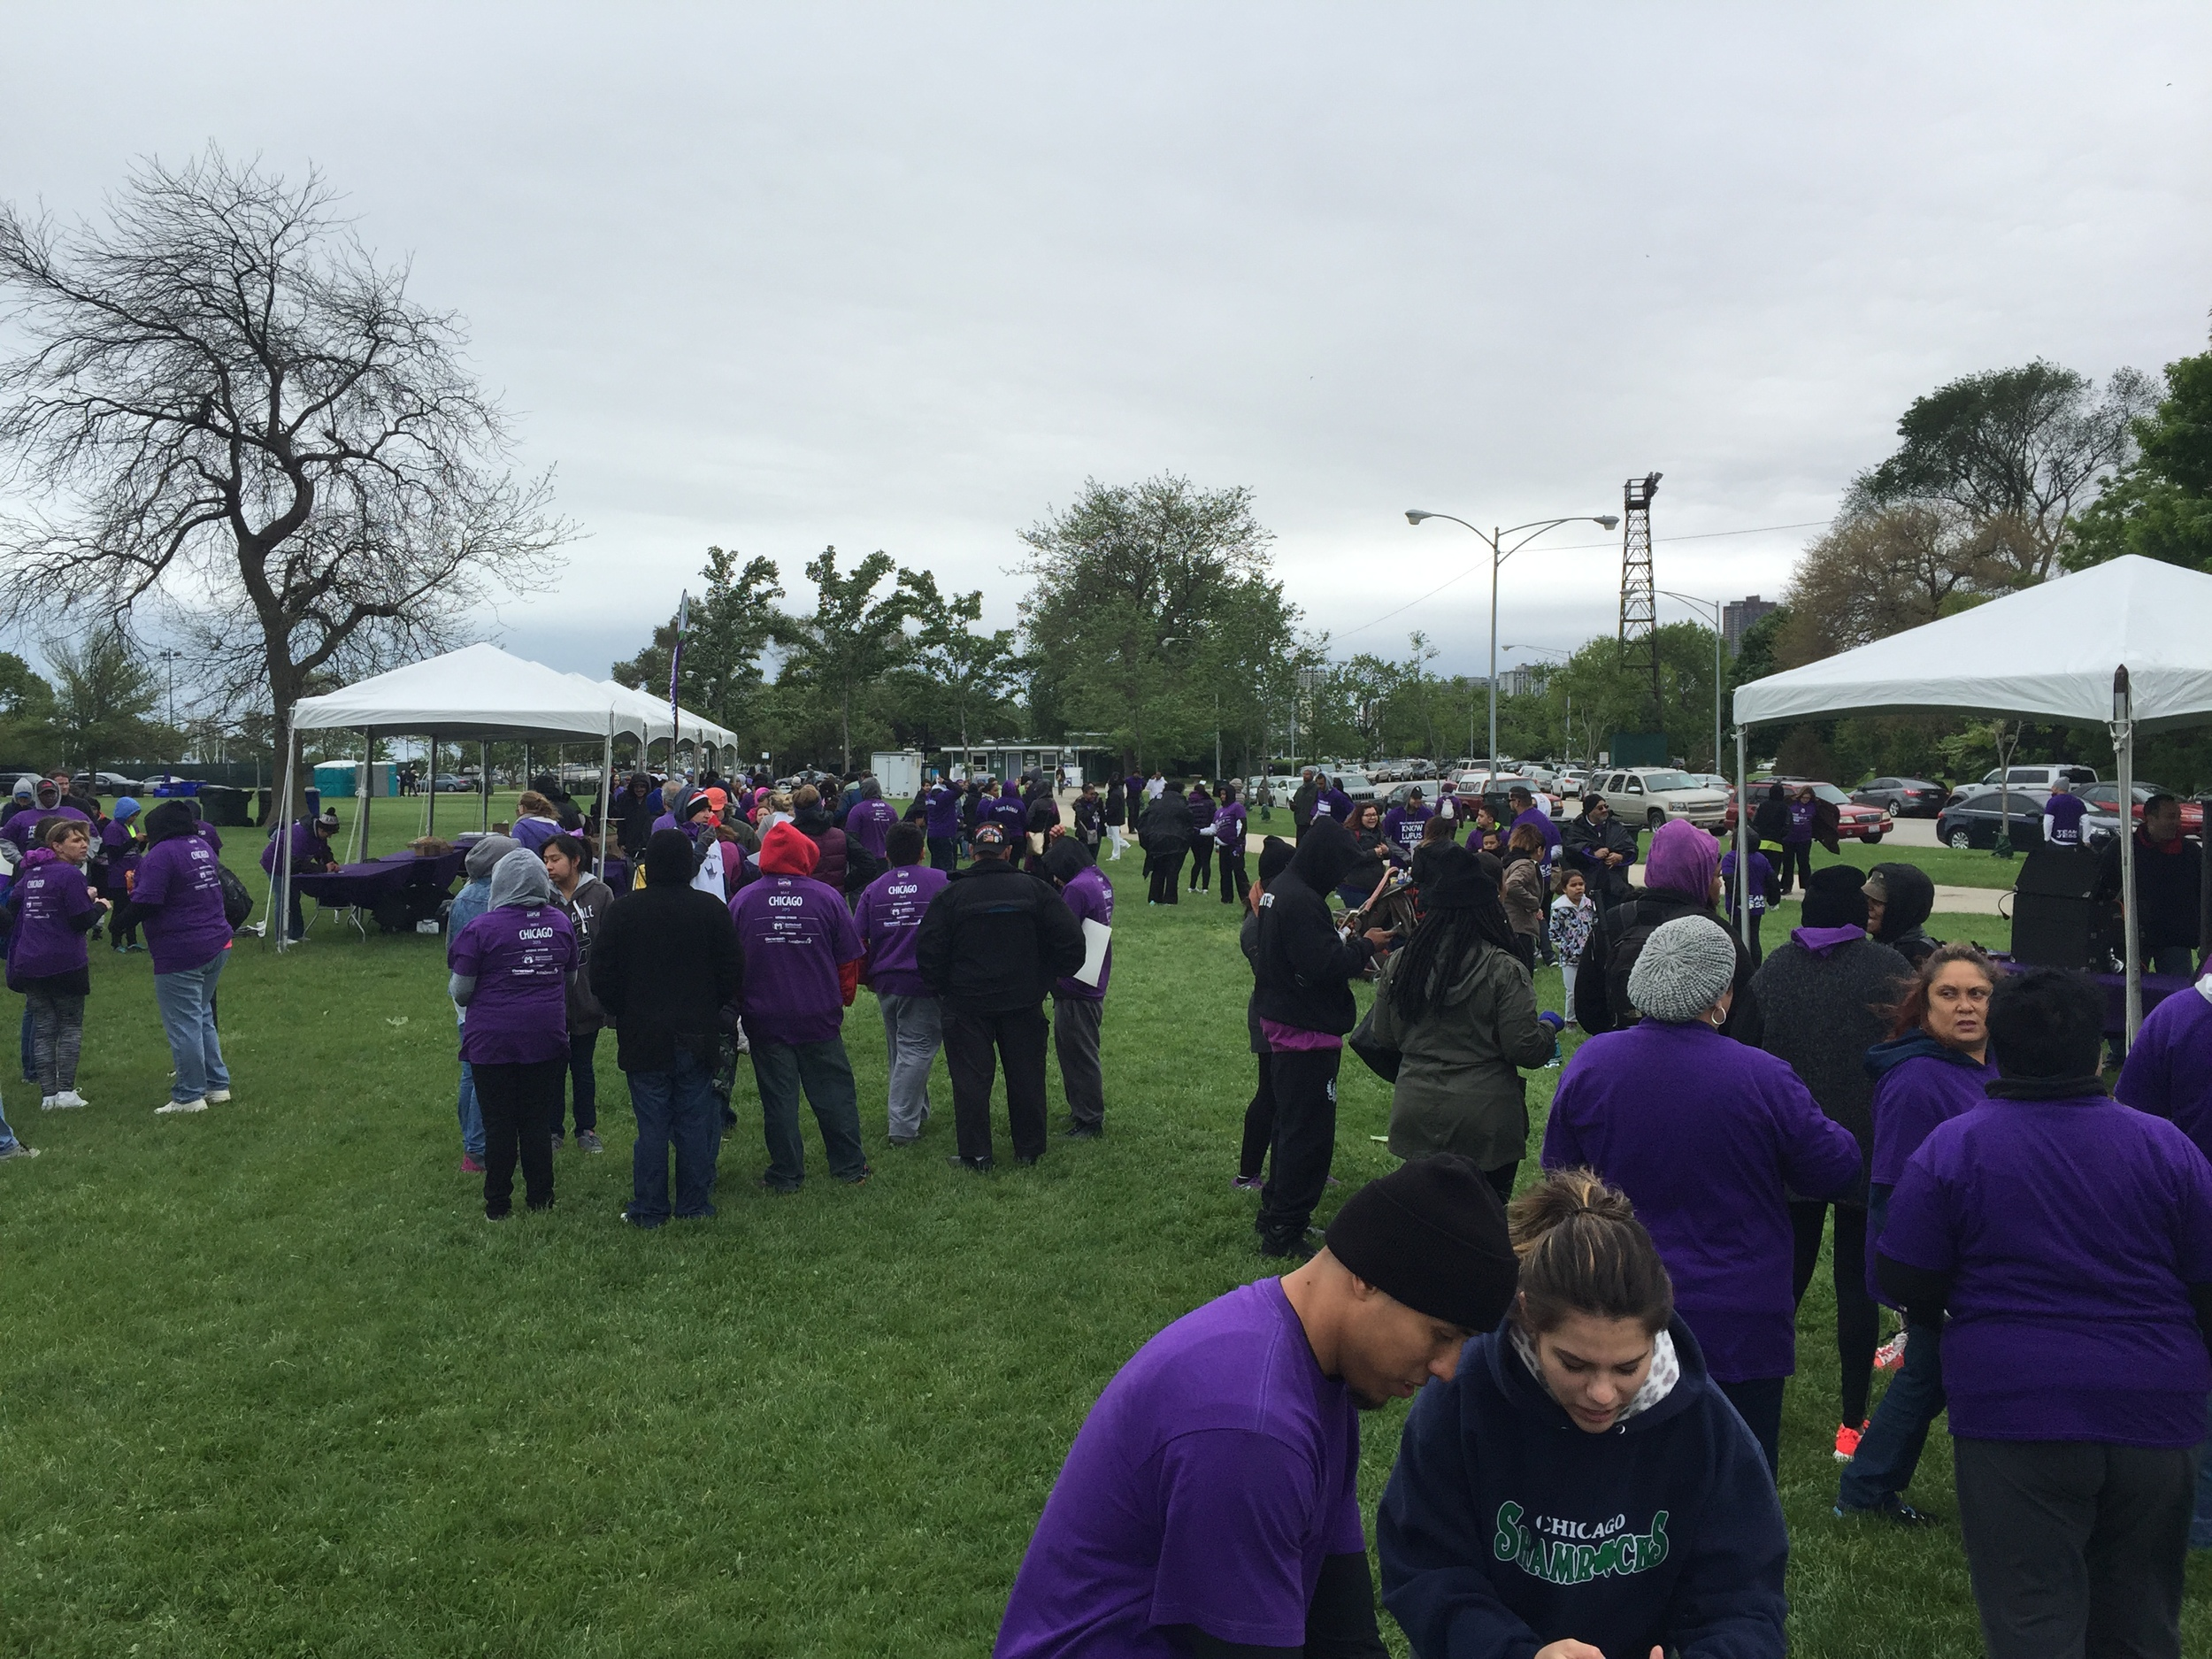 A sea of purple.